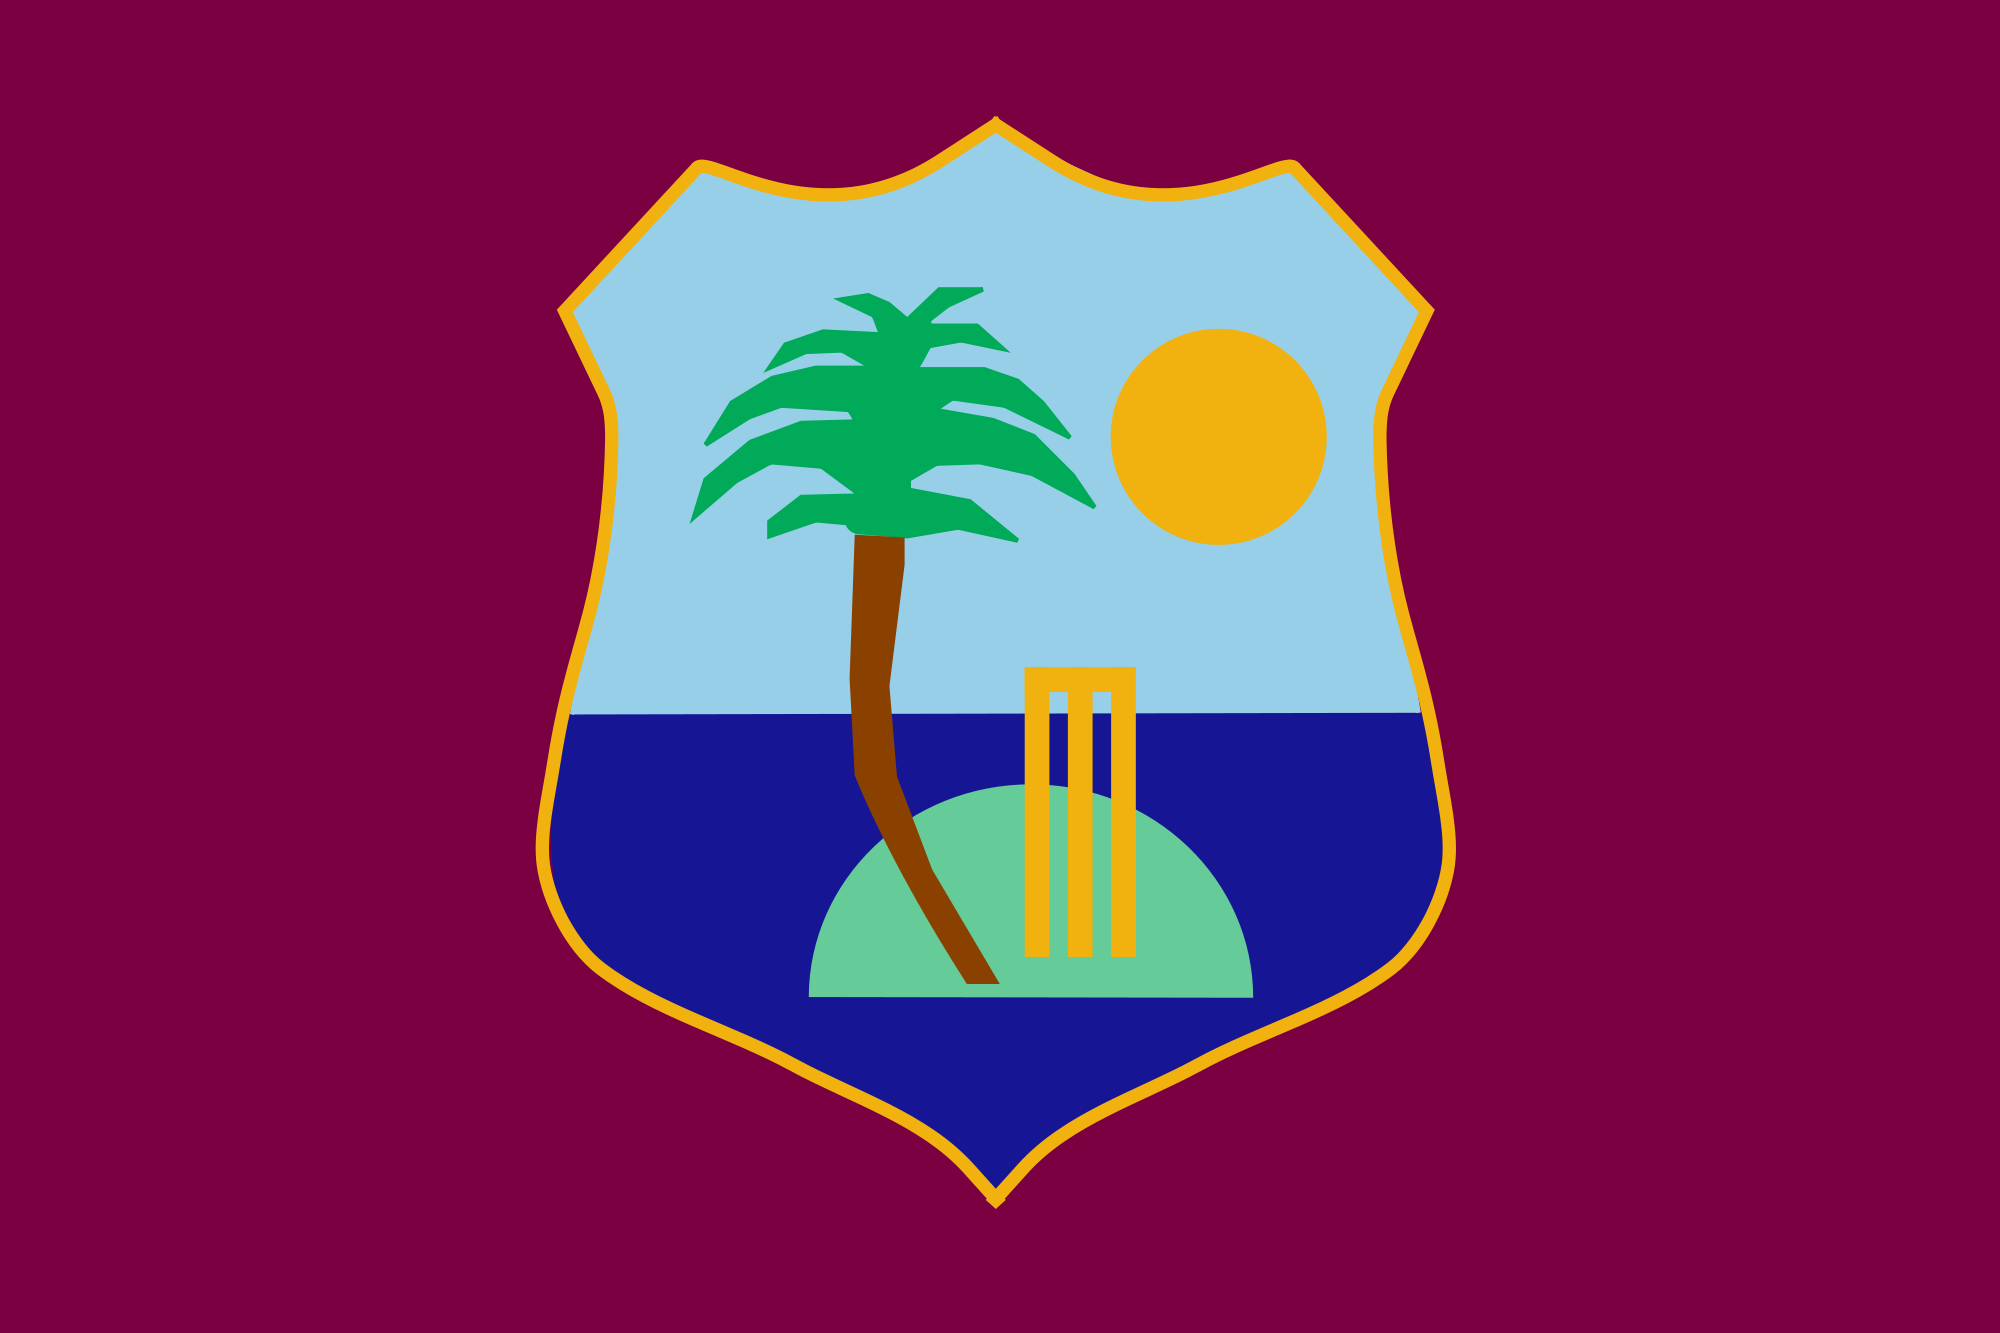 WEST INDIES CRICKET TEAM Photos, Image and Wallpapers